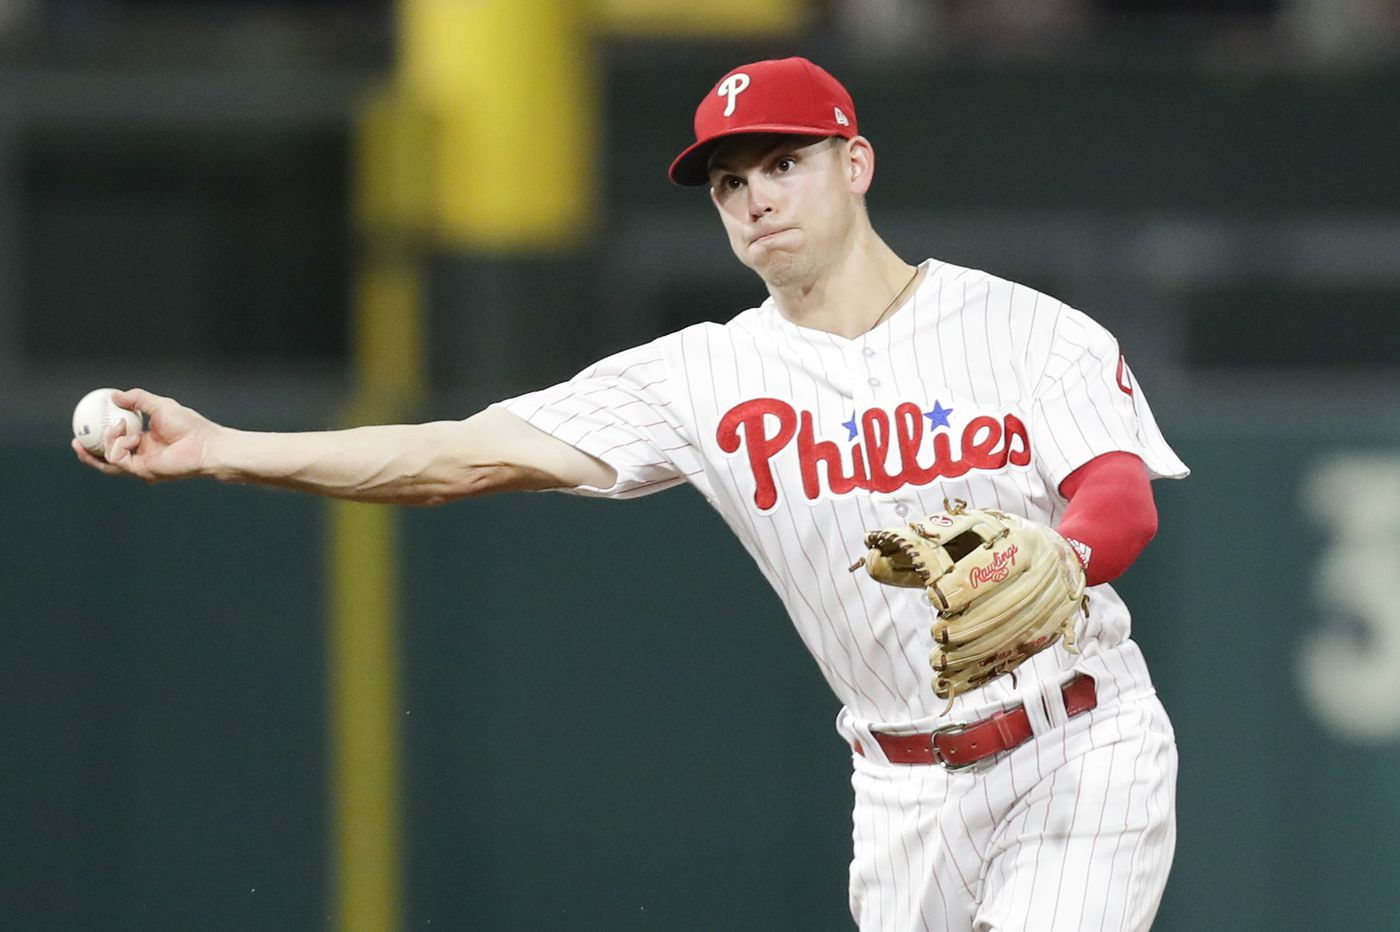 Phillies season provides plenty of answers | Marcus Hayes